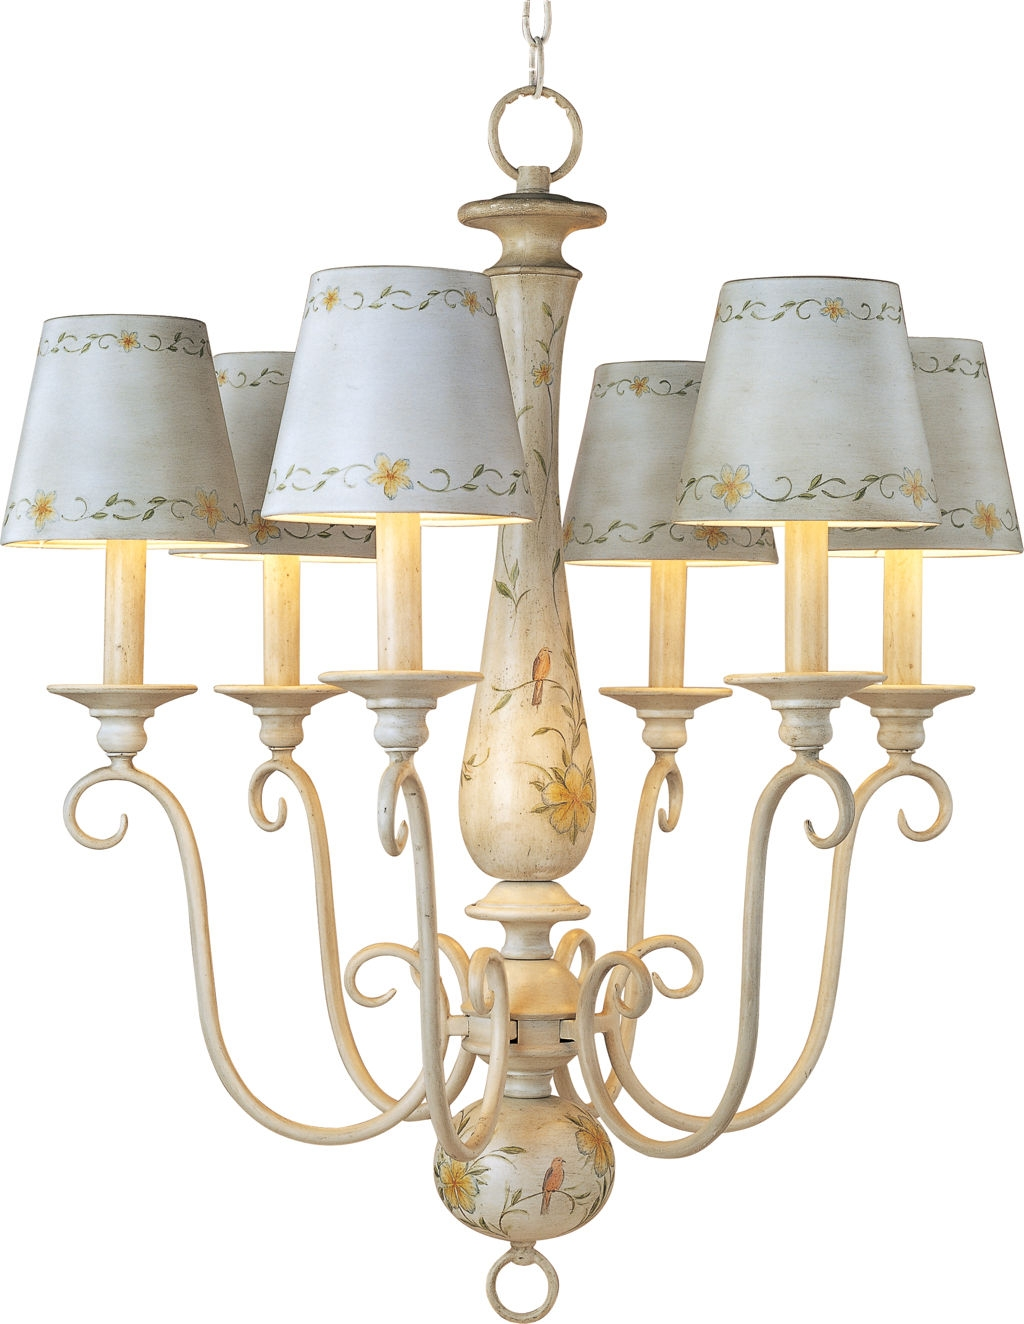 The Attractive Types Of Chandelier Lamp Shades Lgilab With Regard To Chandelier Lamp Shades (Image 21 of 25)